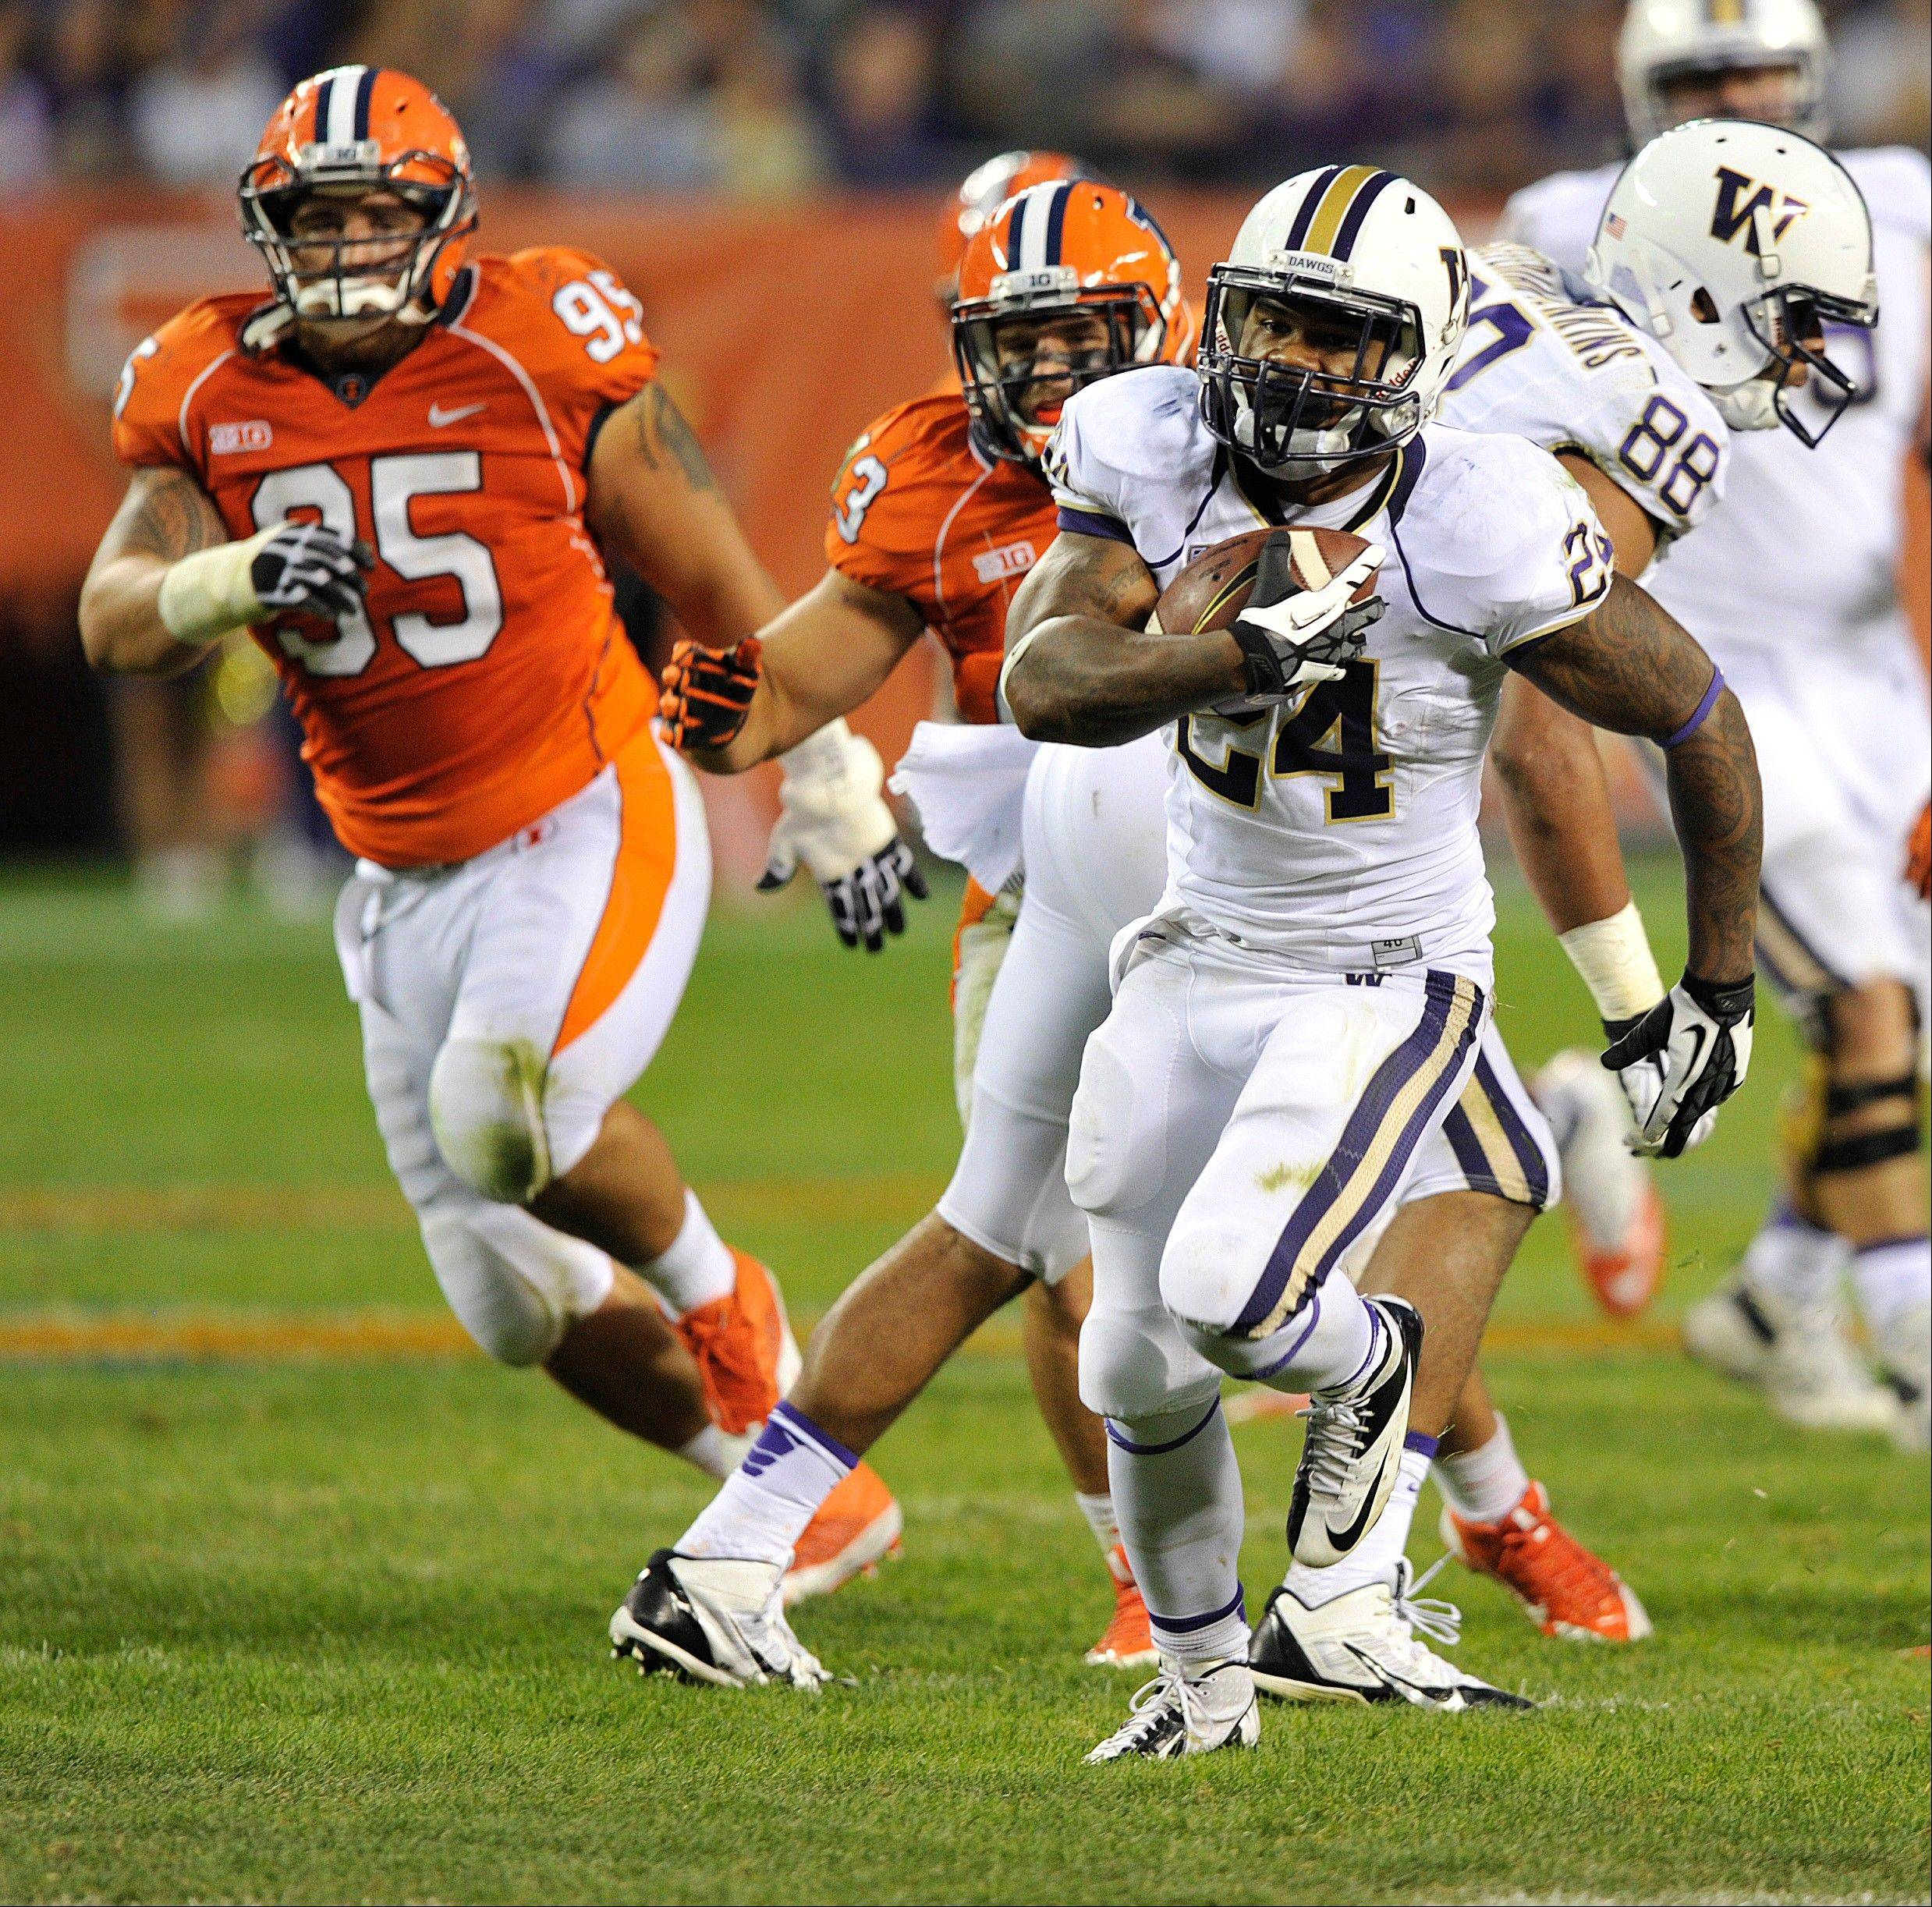 Washington's Jesse Callier outruns the Illinois defense during the second half Saturday night at Soldier Field.